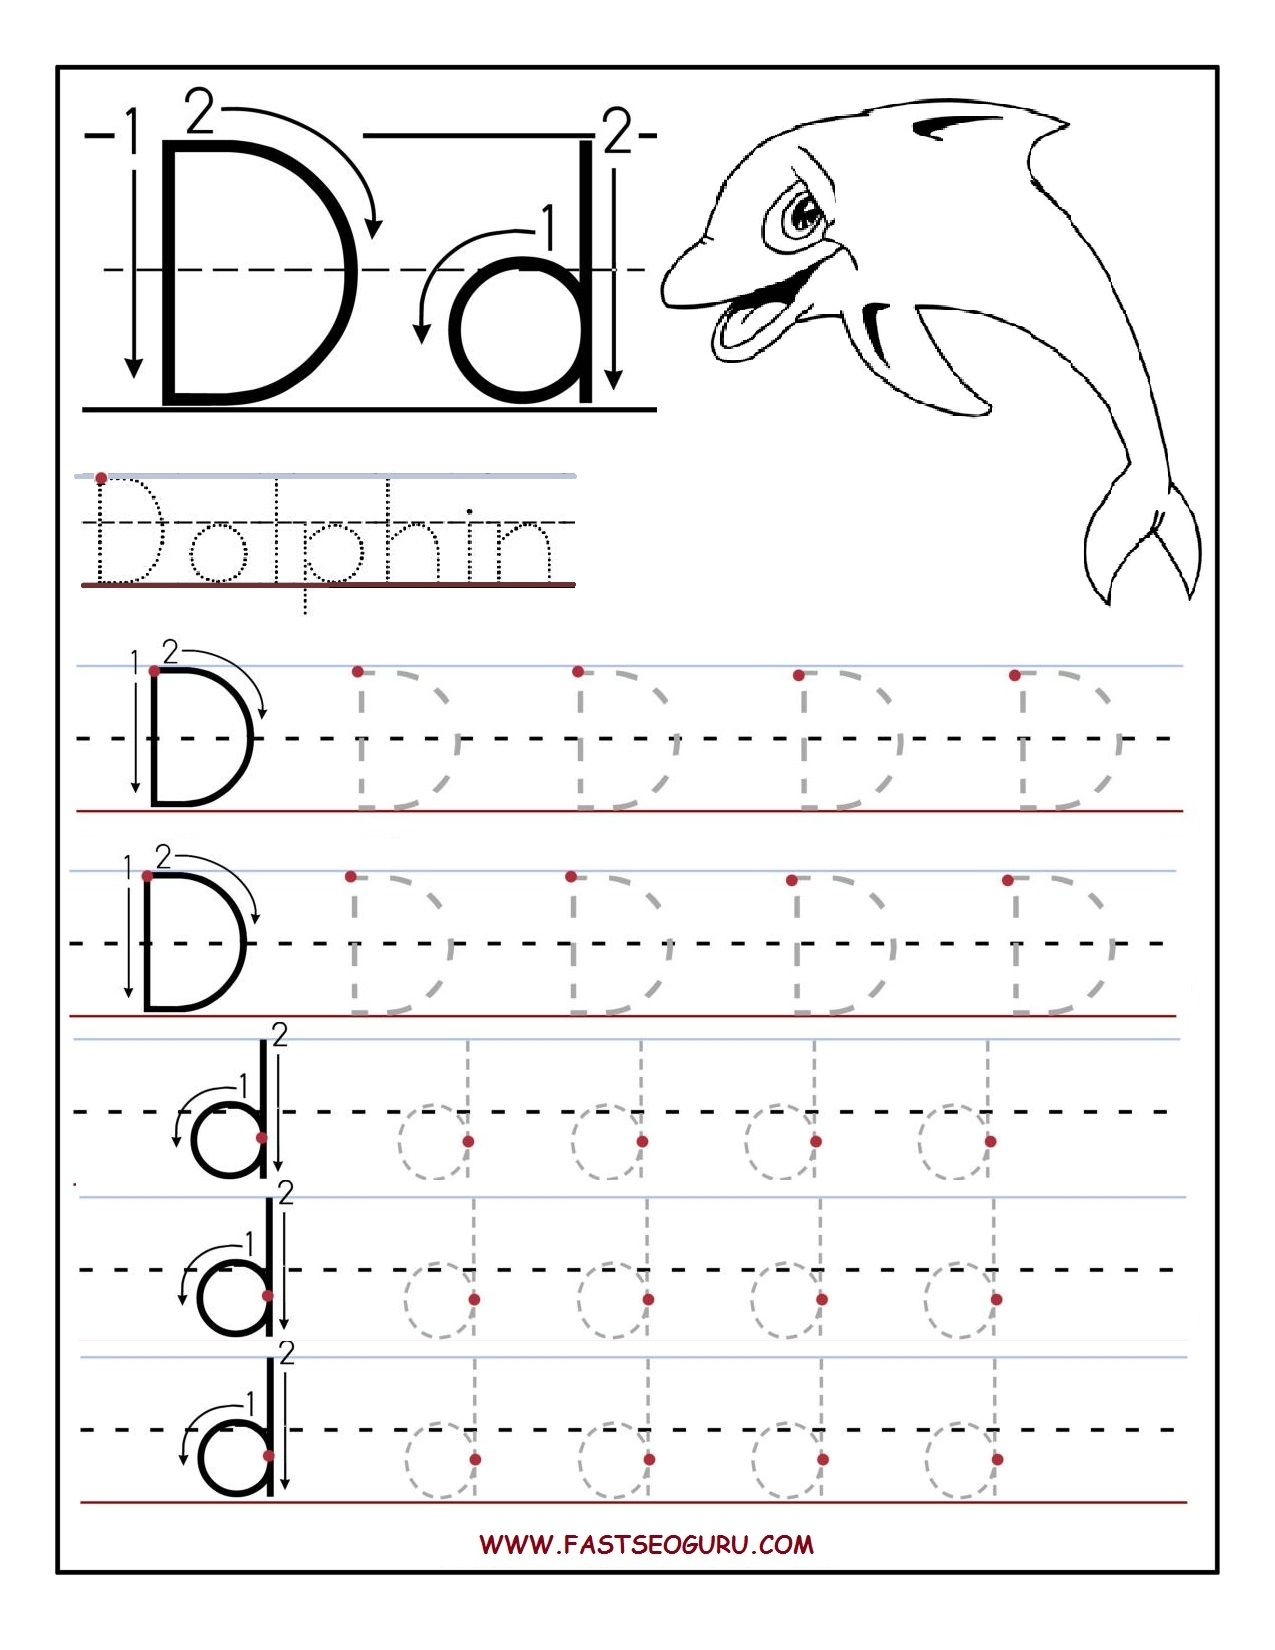 Preschool Alphabet Worksheets Printables Printable Letter A for Letter D Worksheets Pdf Free Printables